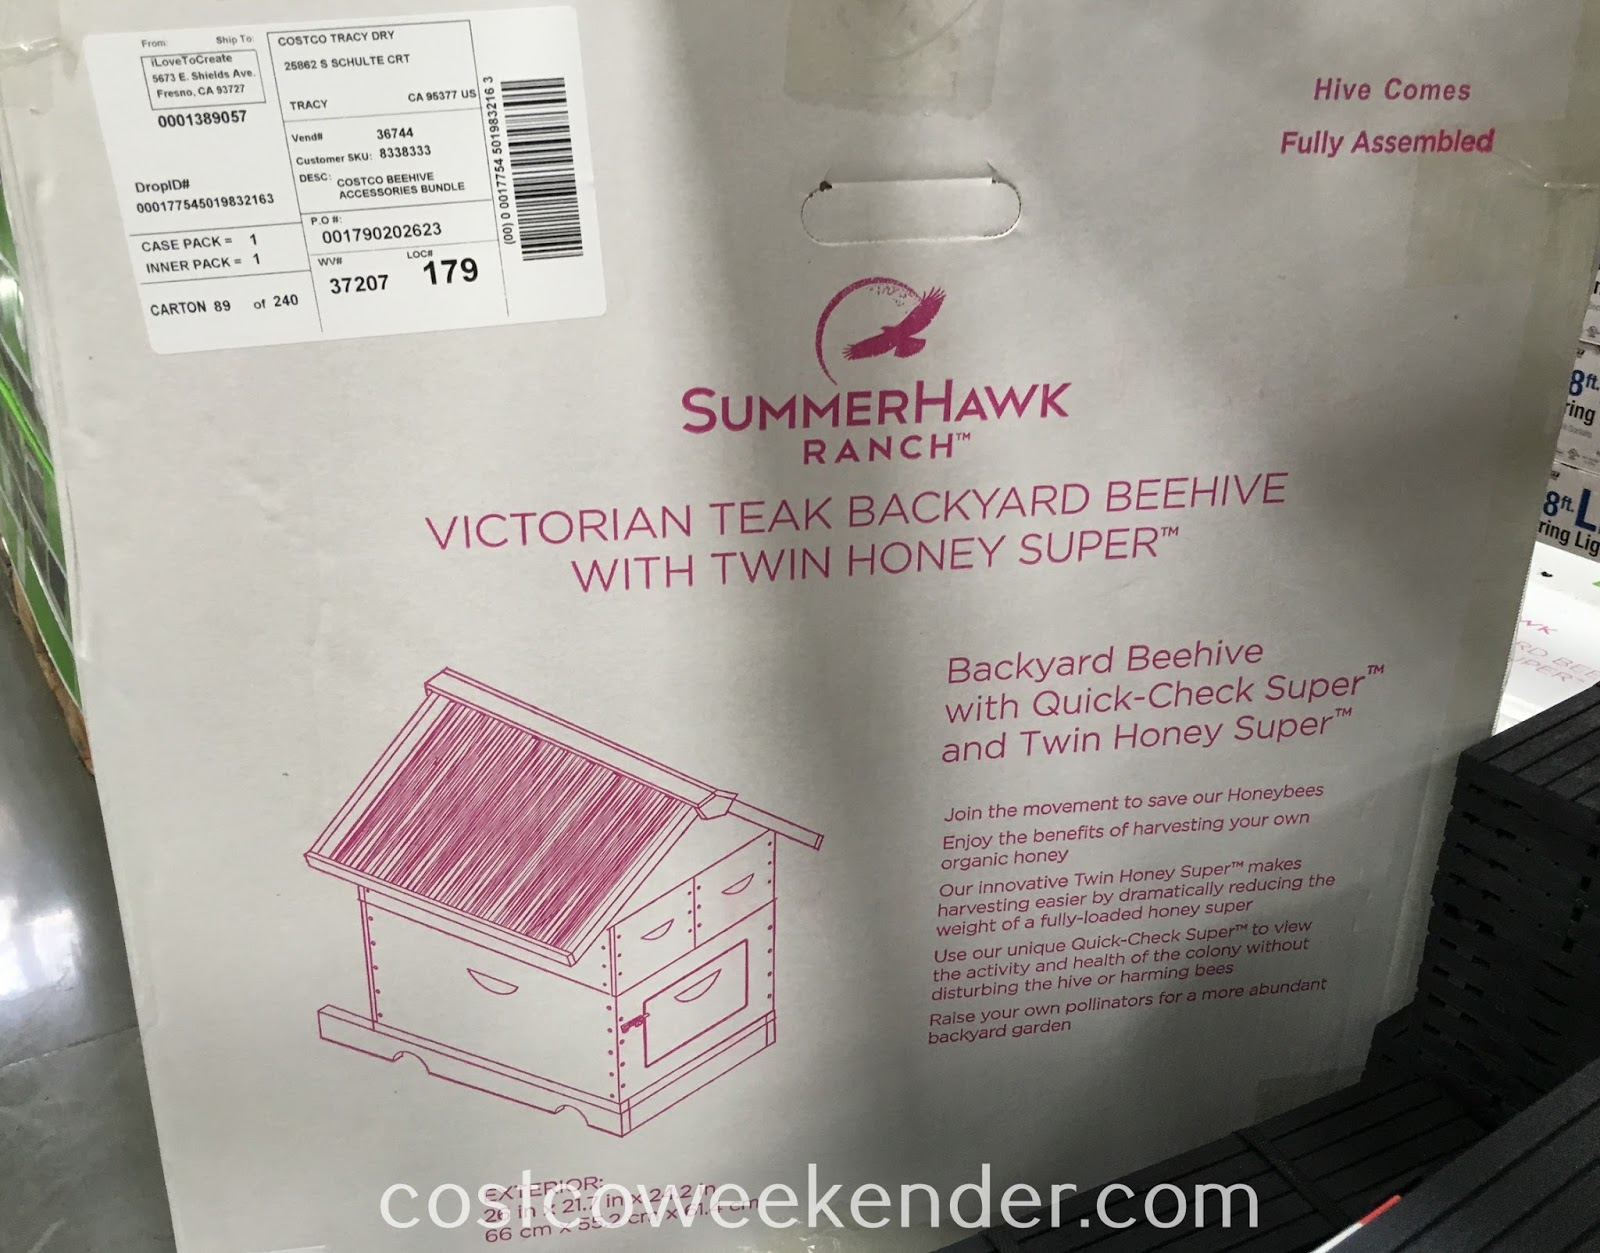 SummerHawk Ranch Victorian Teak Backyard Beehive with Twin Honey Super: great if you're looking for a new hobby